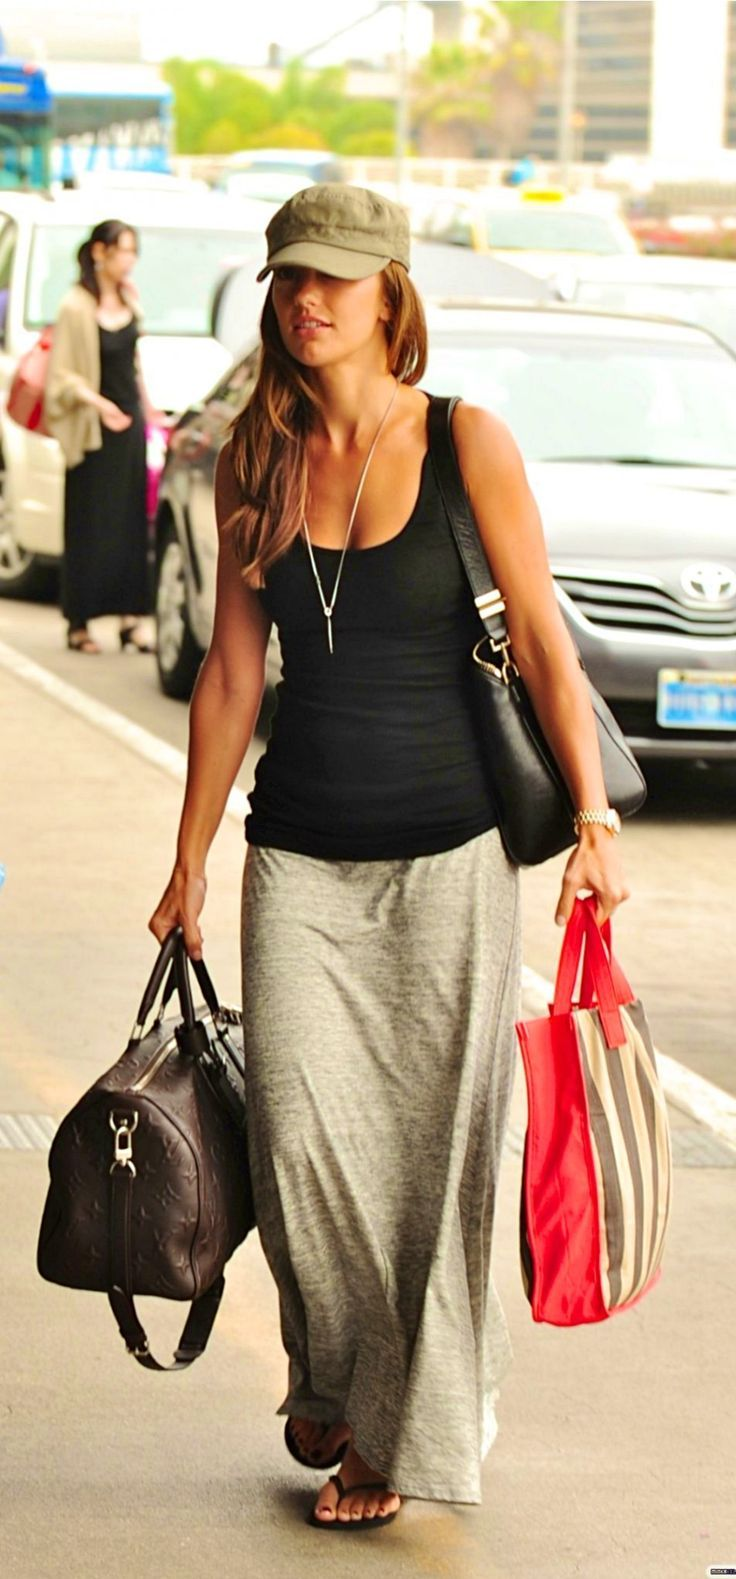 Minka Kelly gettings casual in a fitted tank and maxi skirt! Get your look like this at RPBoutique.com